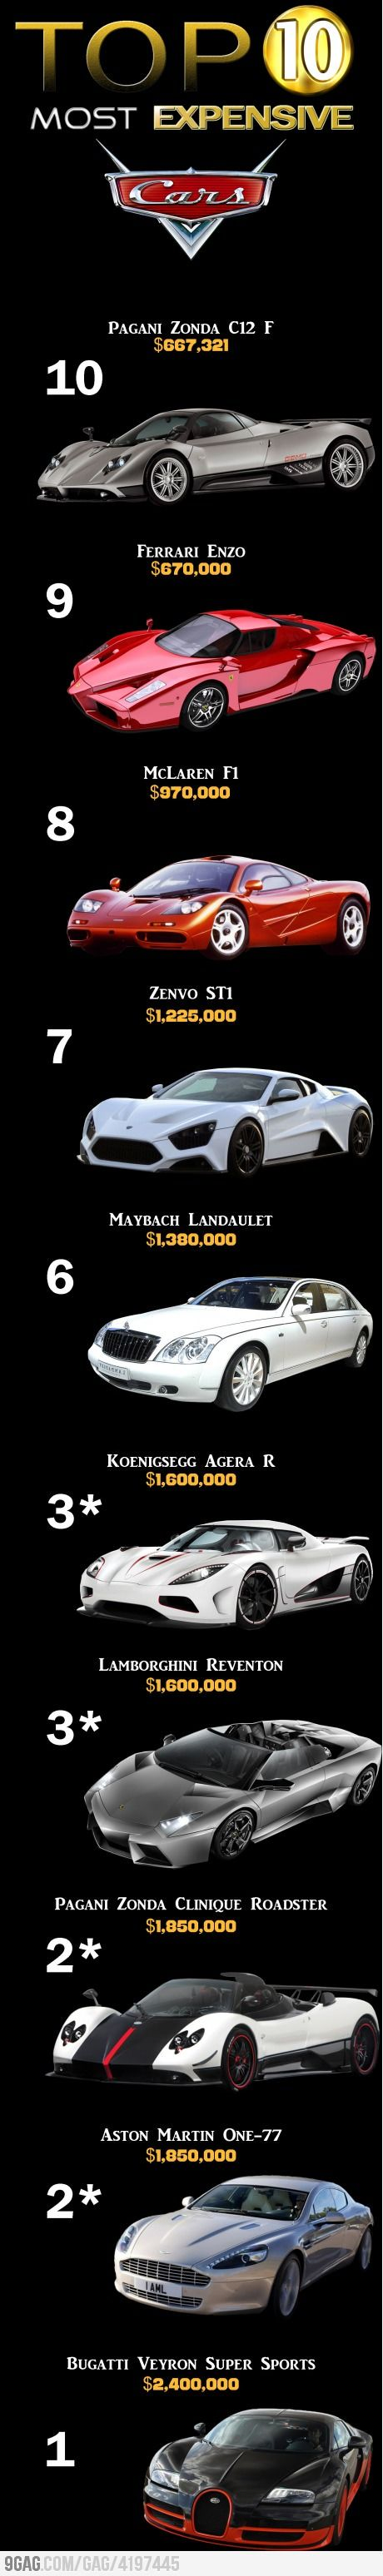 Most expensive cars in the world expensive cars most